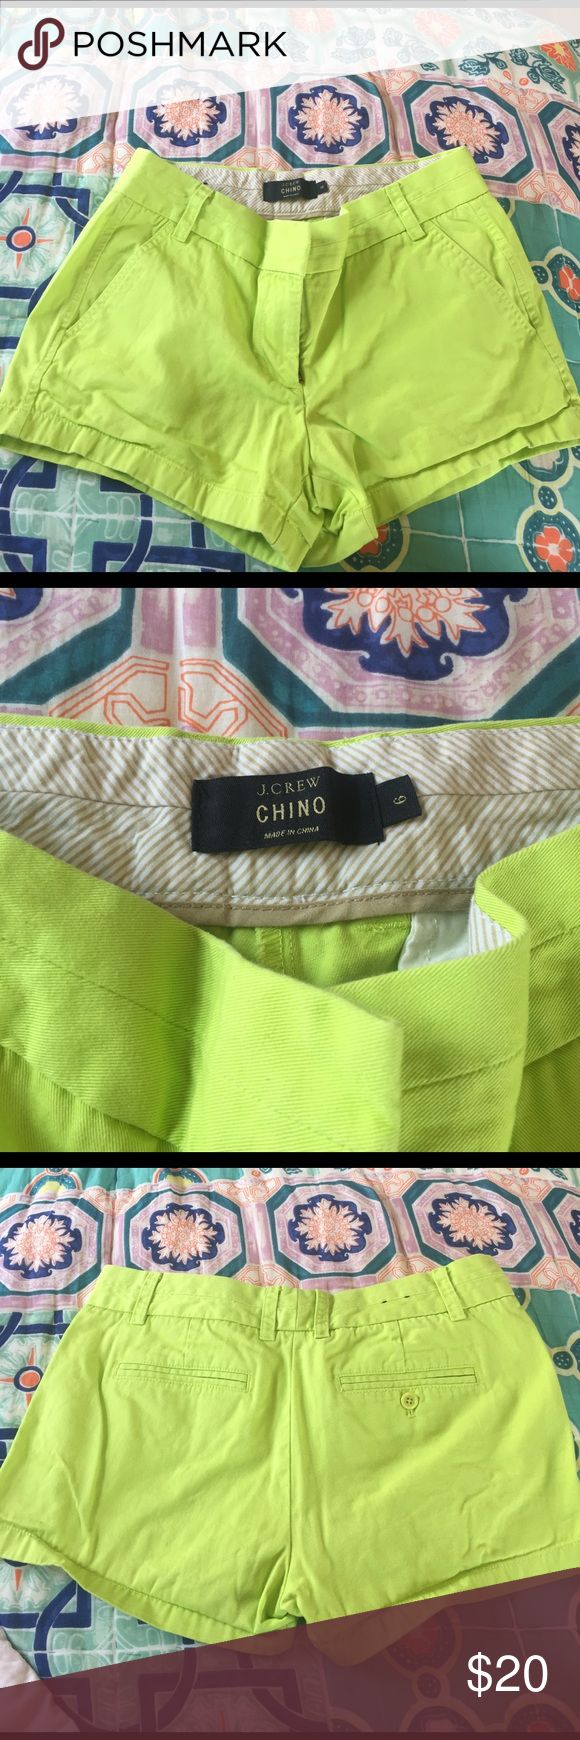 J. Crew neon green chino shorts Great condition. Chino shorts. 100% cotton. Many other colors available J. Crew Shorts